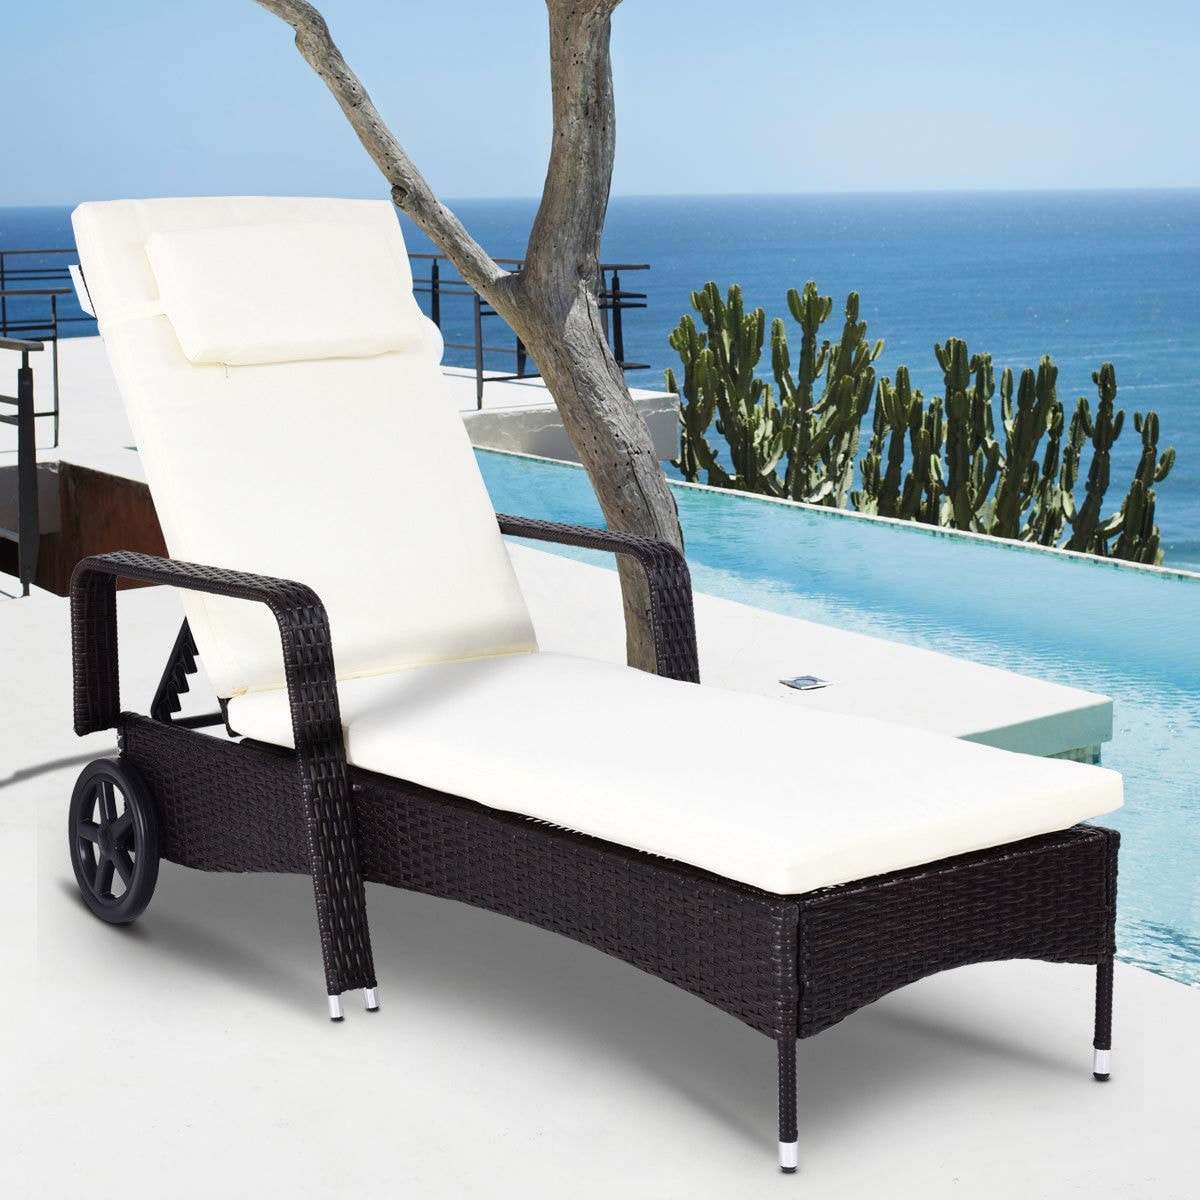 Pool Chaise Lounge Chairs Chaise Lounge Patio Chair House Architecture Design